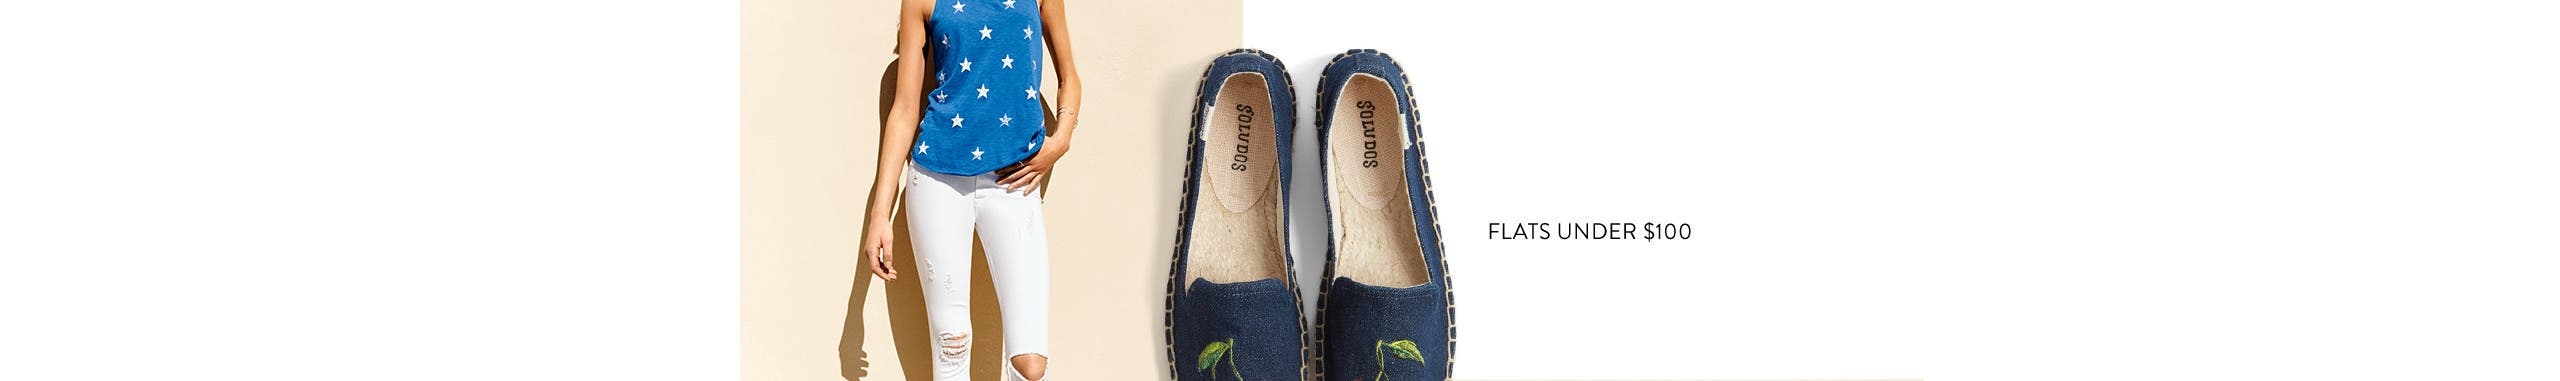 Summer: what to wear all day, every day. Women's flats under $100.